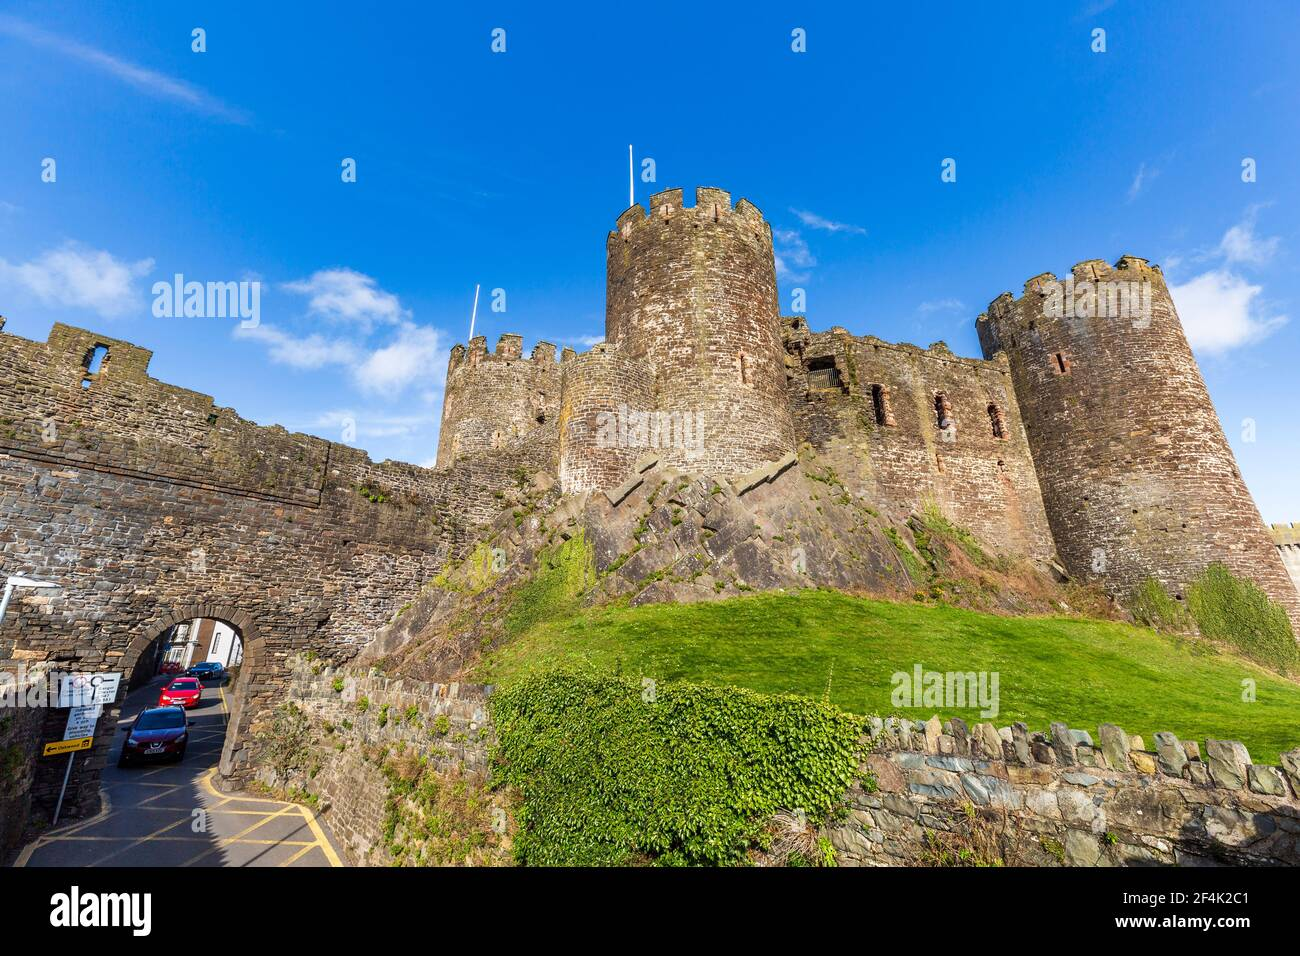 The town road through the castle walls at Conwy, Wales Stock Photo